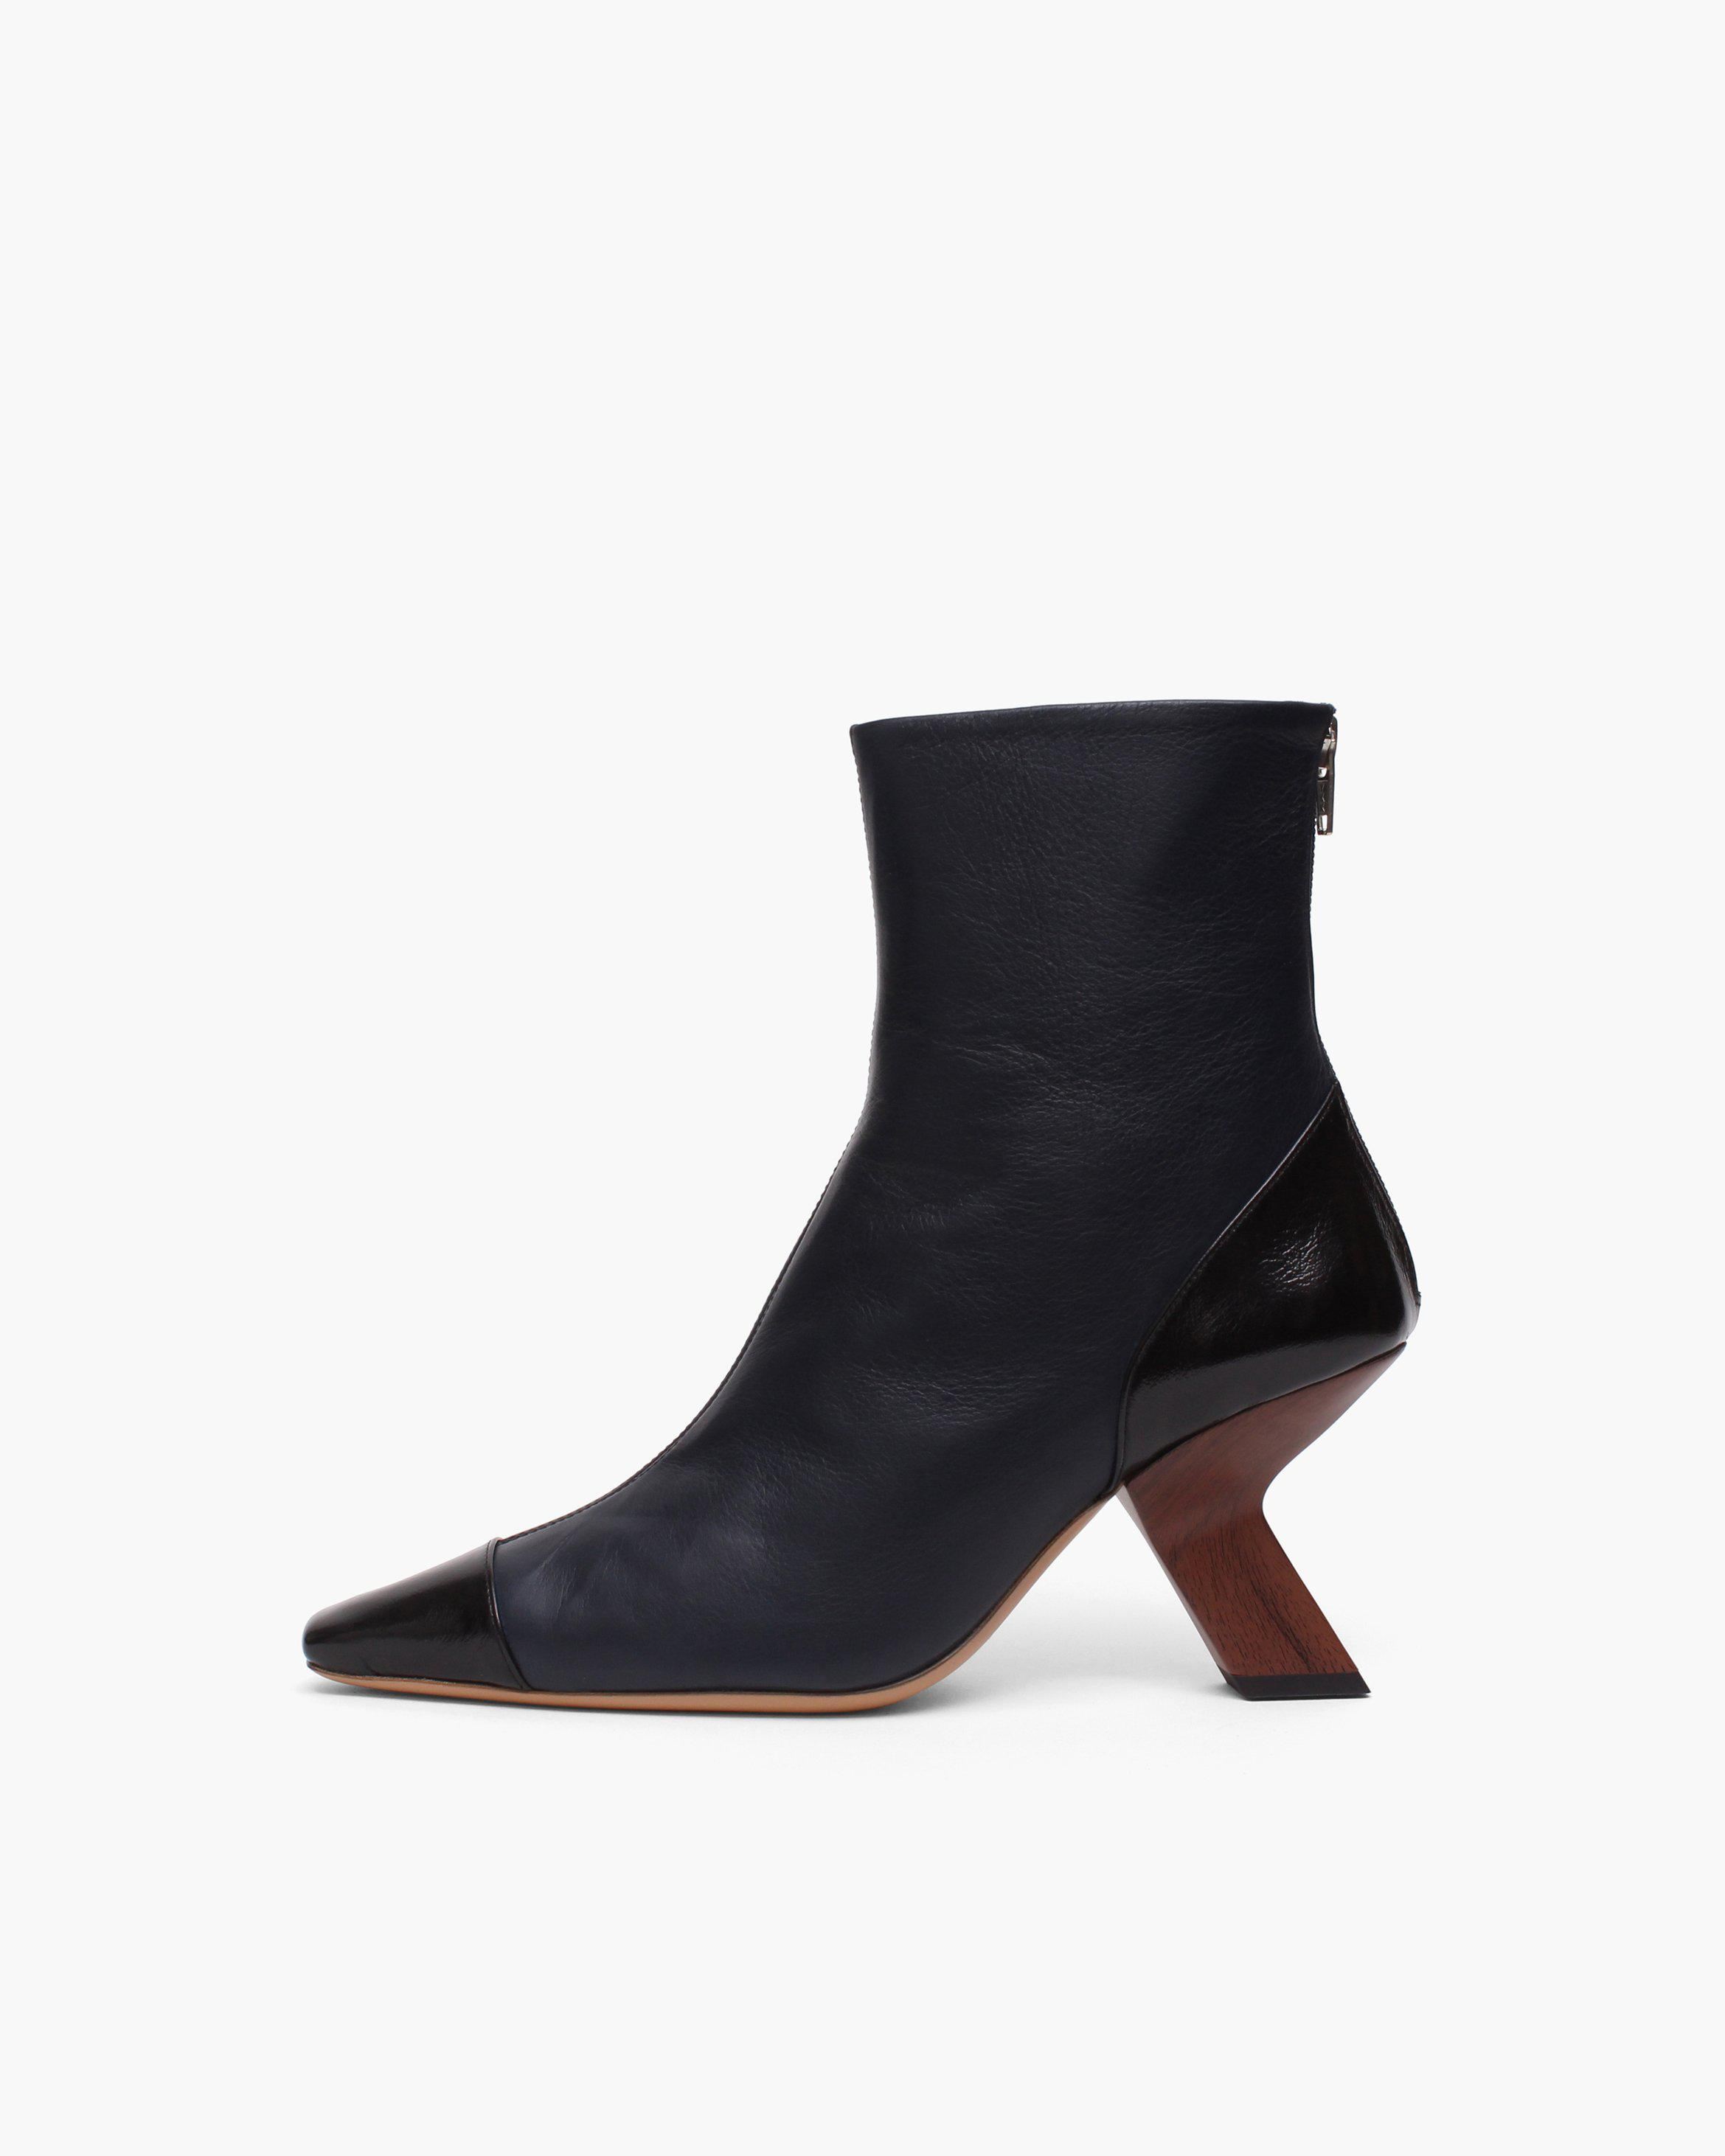 Marley Boots Leather Nappa Navy